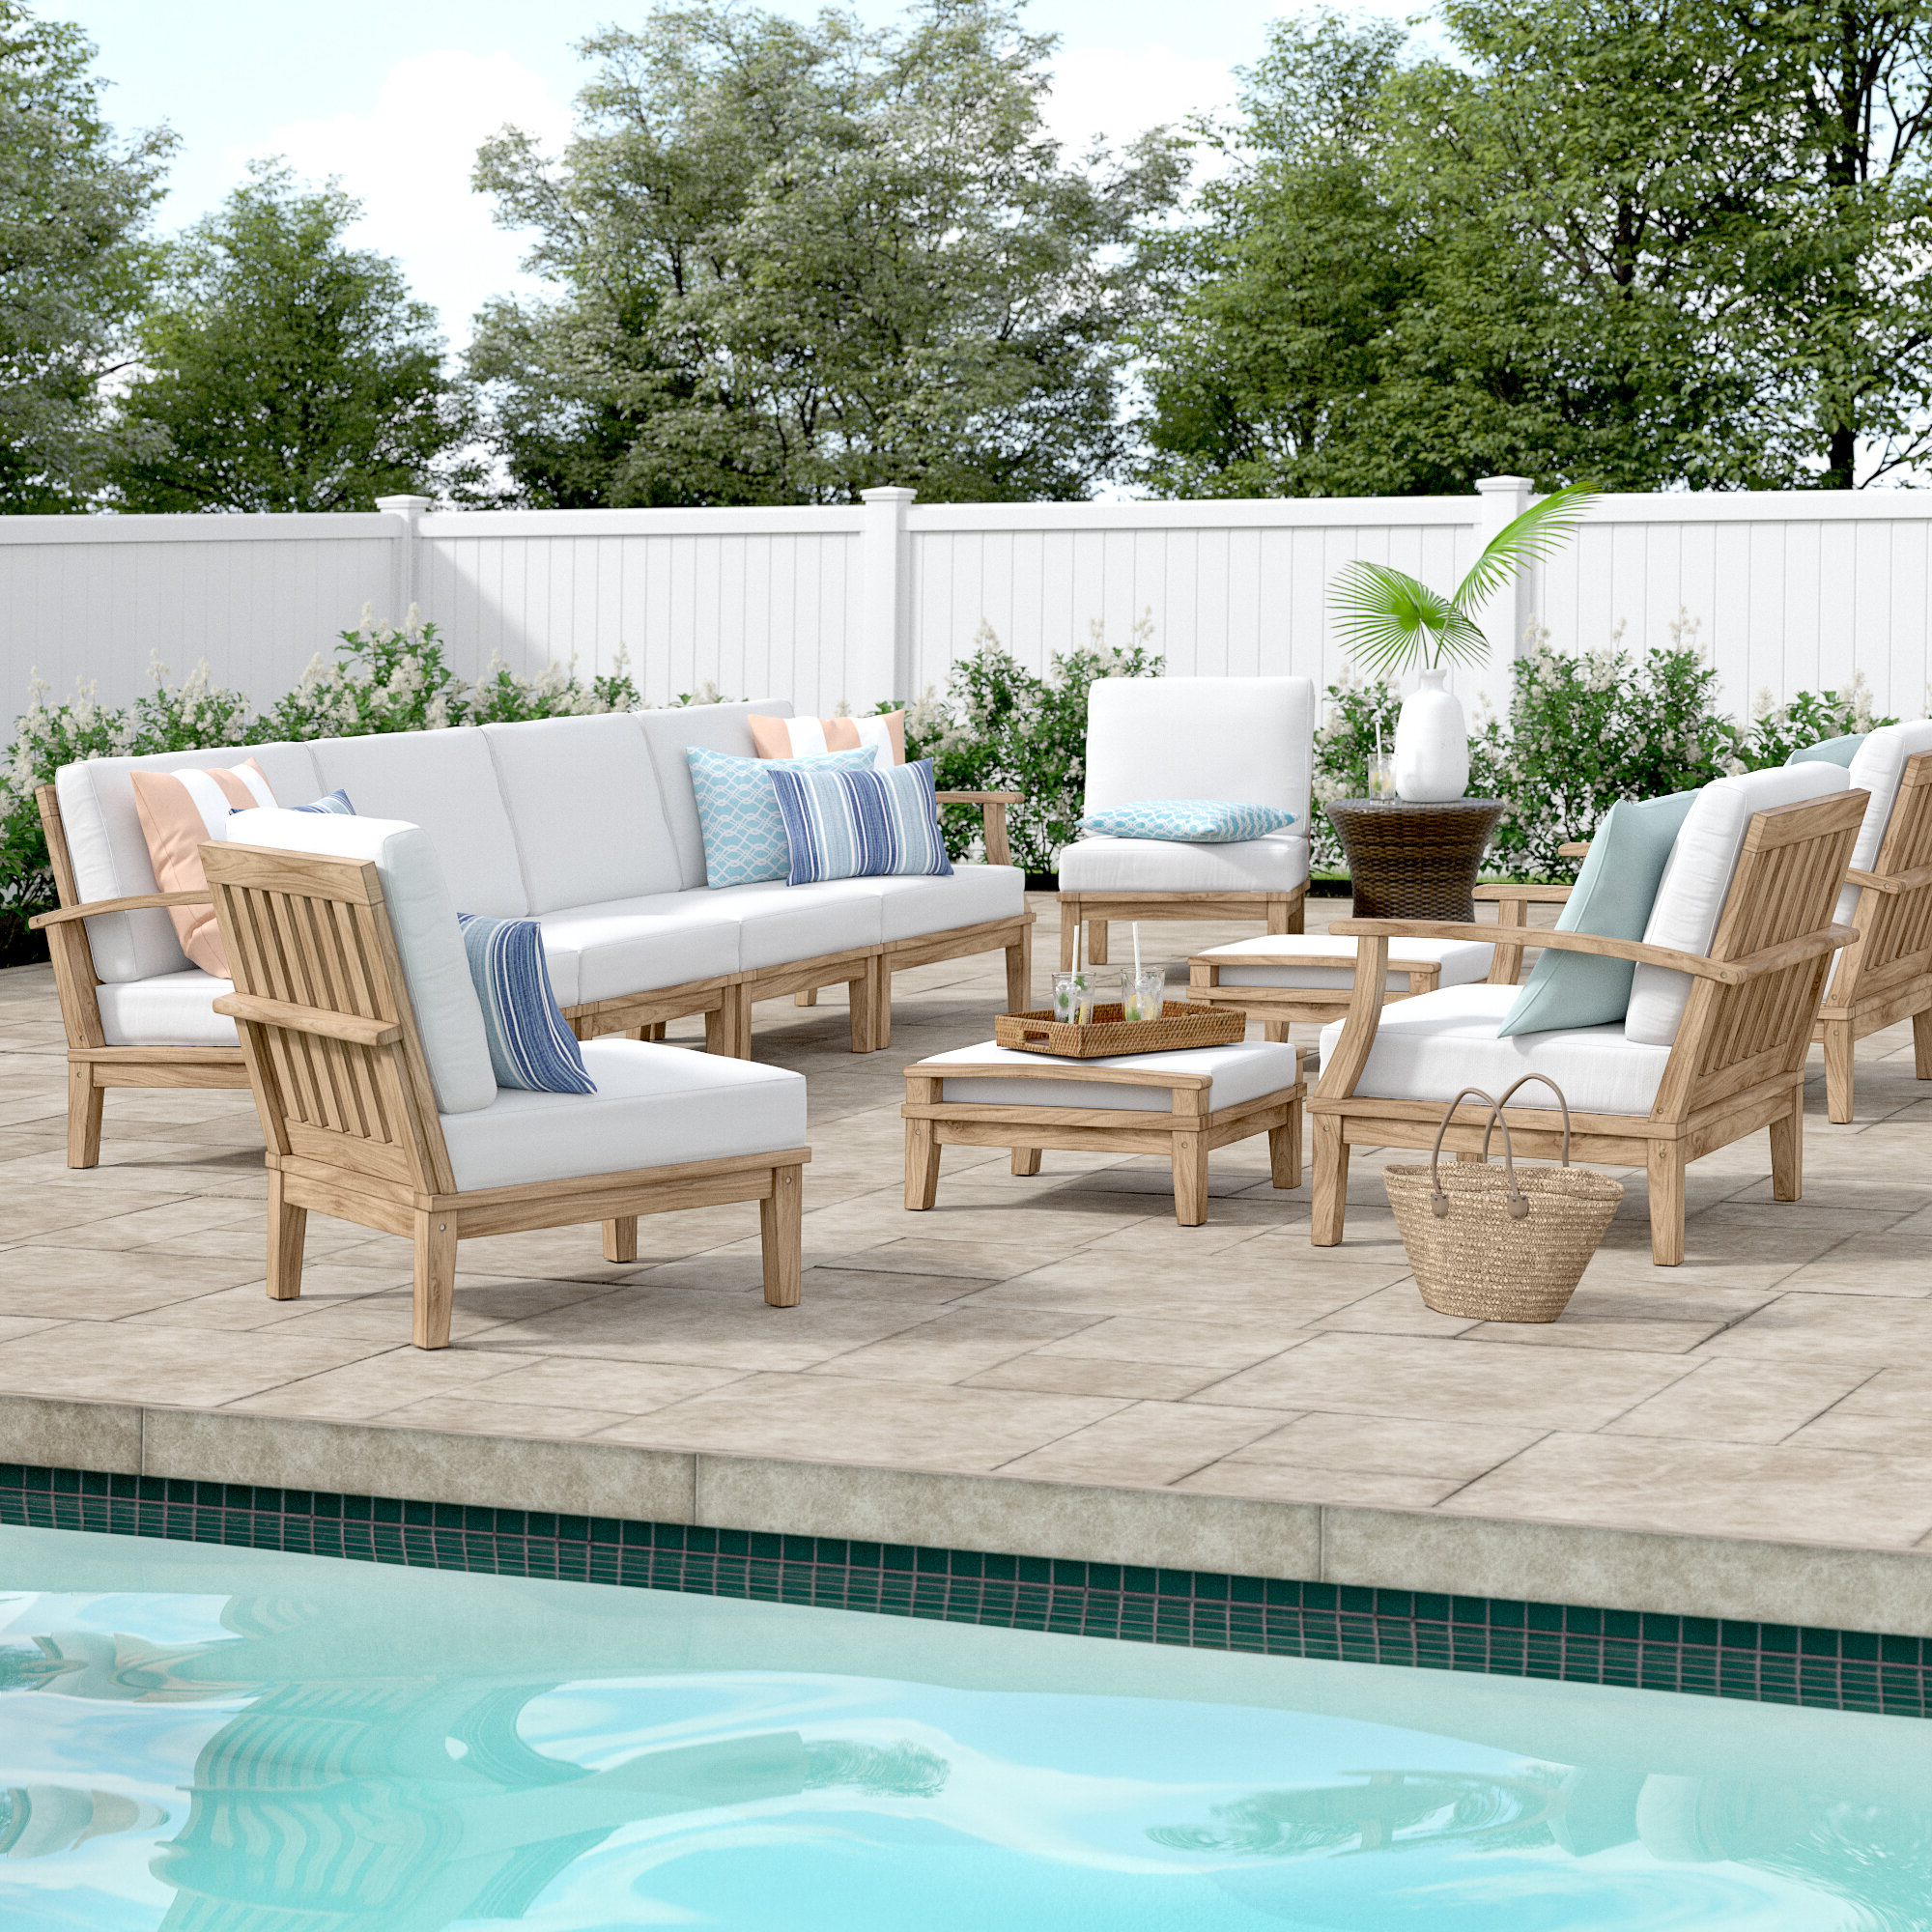 Latest Elaina Cantilever Umbrellas In Elaina 10 Piece Teak Sectional Seating Group With Cushions (View 7 of 20)